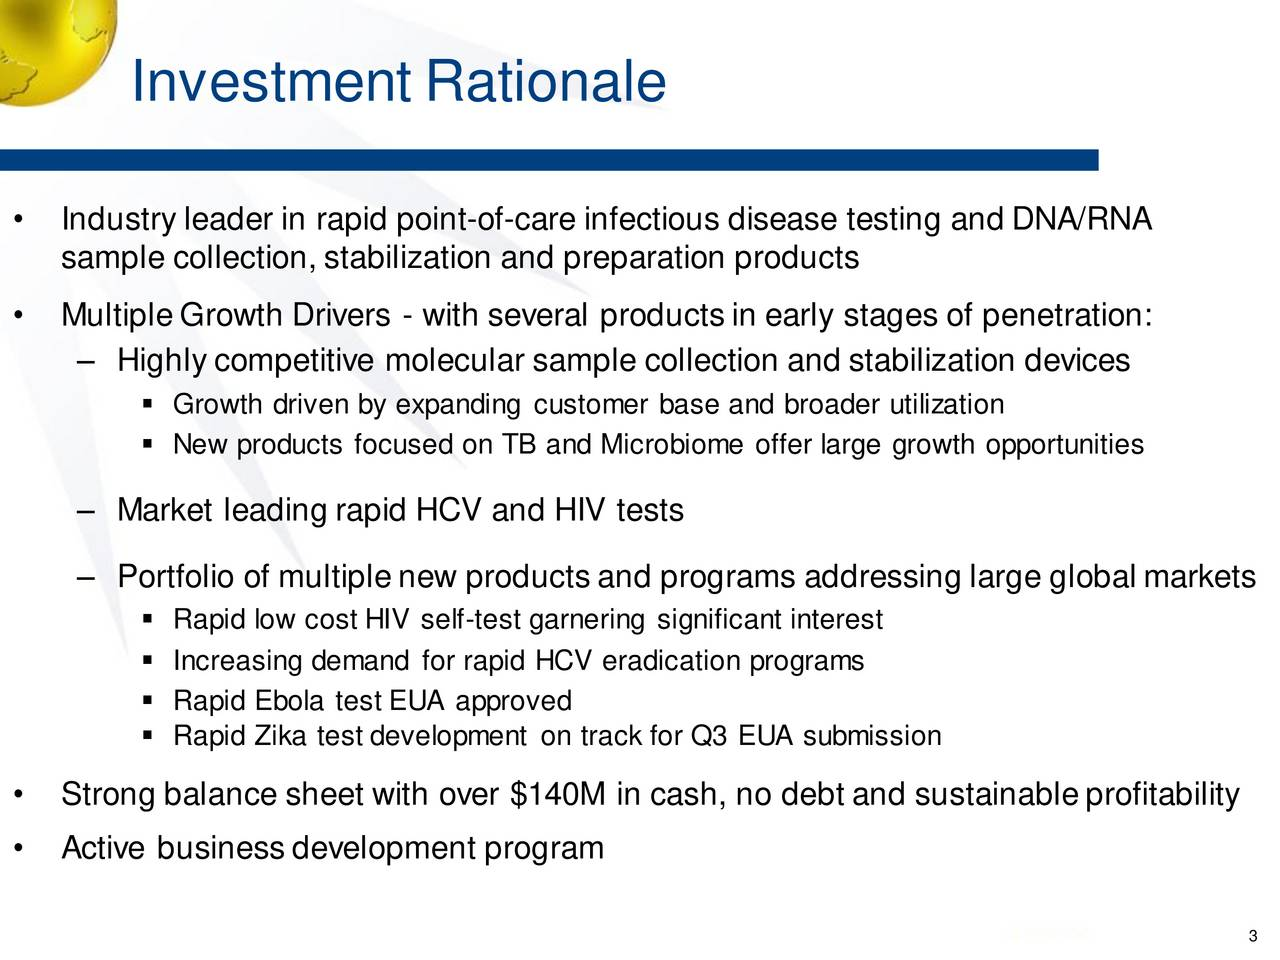 Industry leader in rapid point-of-care infectious disease testing and DNA/RNA sample collection, stabilization and preparation products MultipleGrowth Drivers - with several products in early stages of penetration: Highly competitive molecular sample collection and stabilization devices Growth driven by expanding customer base and broader utilization New products focused on TB and Microbiome offer large growth opportunities Market leading rapid HCV and HIV tests Portfolio of multiplenew products and programs addressing large global markets Rapid low cost HIV self-test garnering significant interest Increasing demand for rapid HCV eradication programs Rapid Ebola test EUA approved Rapid Zika test development on track for Q3 EUA submission Strong balance sheet with over $140M in cash, no debt and sustainableprofitability Active business development program 3